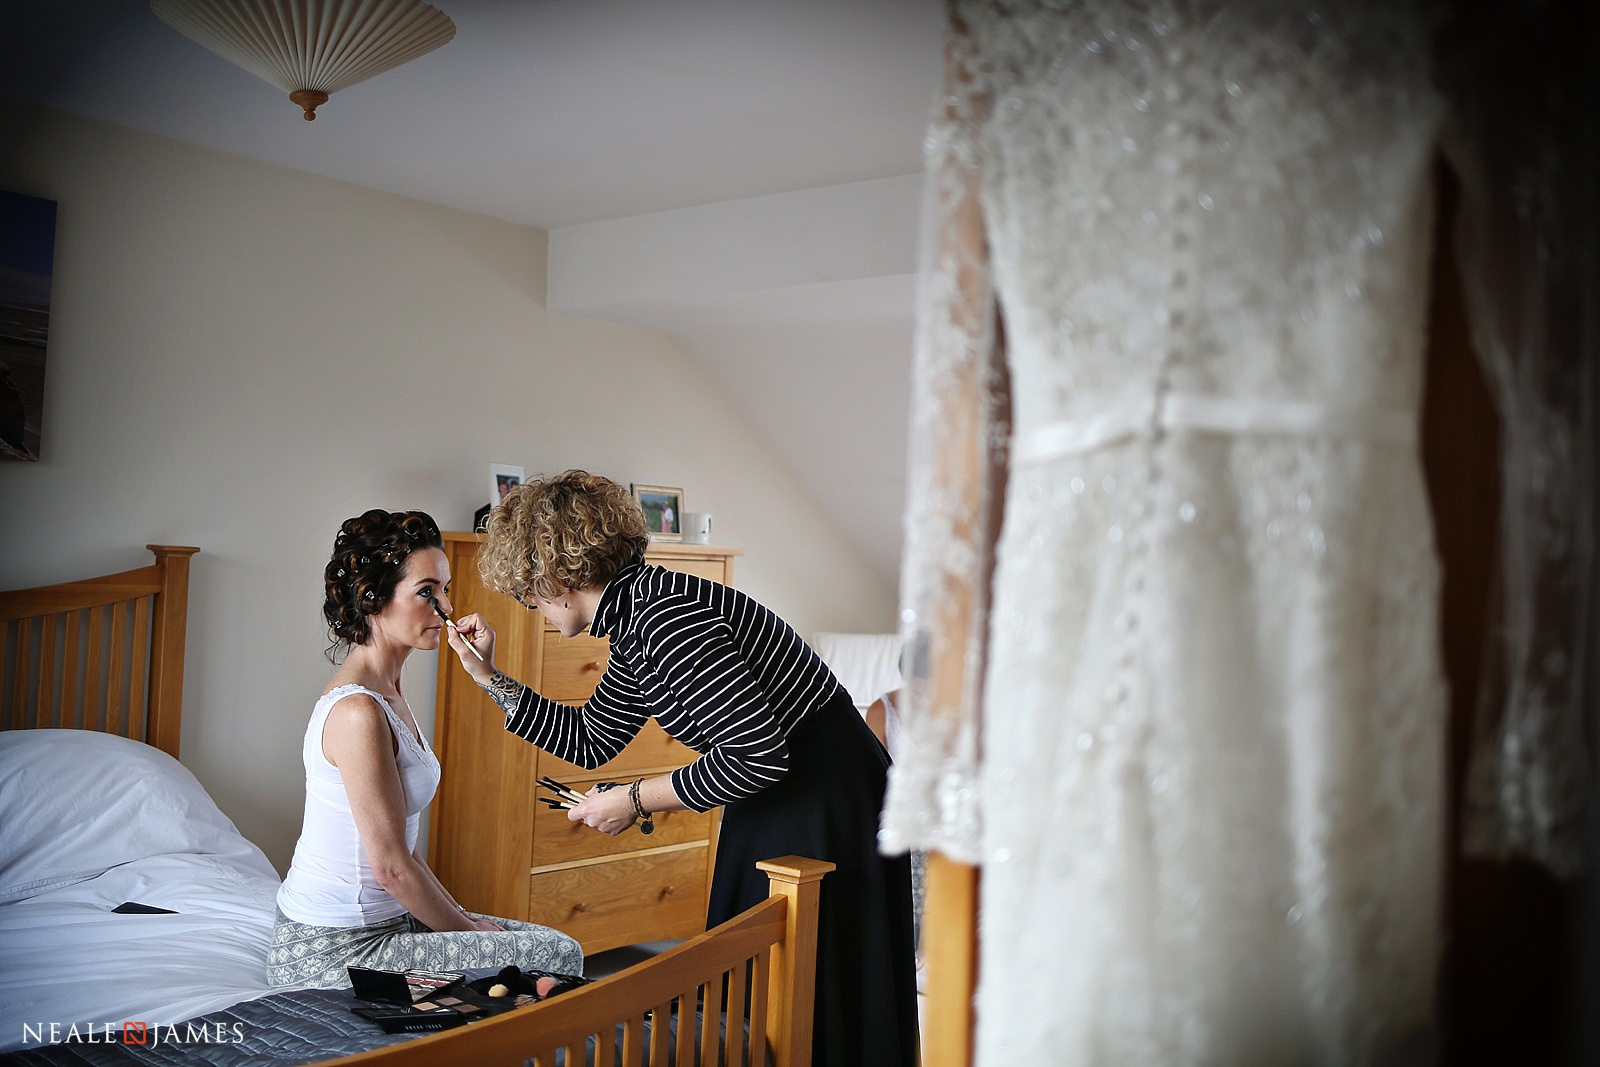 Colour photograph of a bride having make up applied with her dress in the foreground